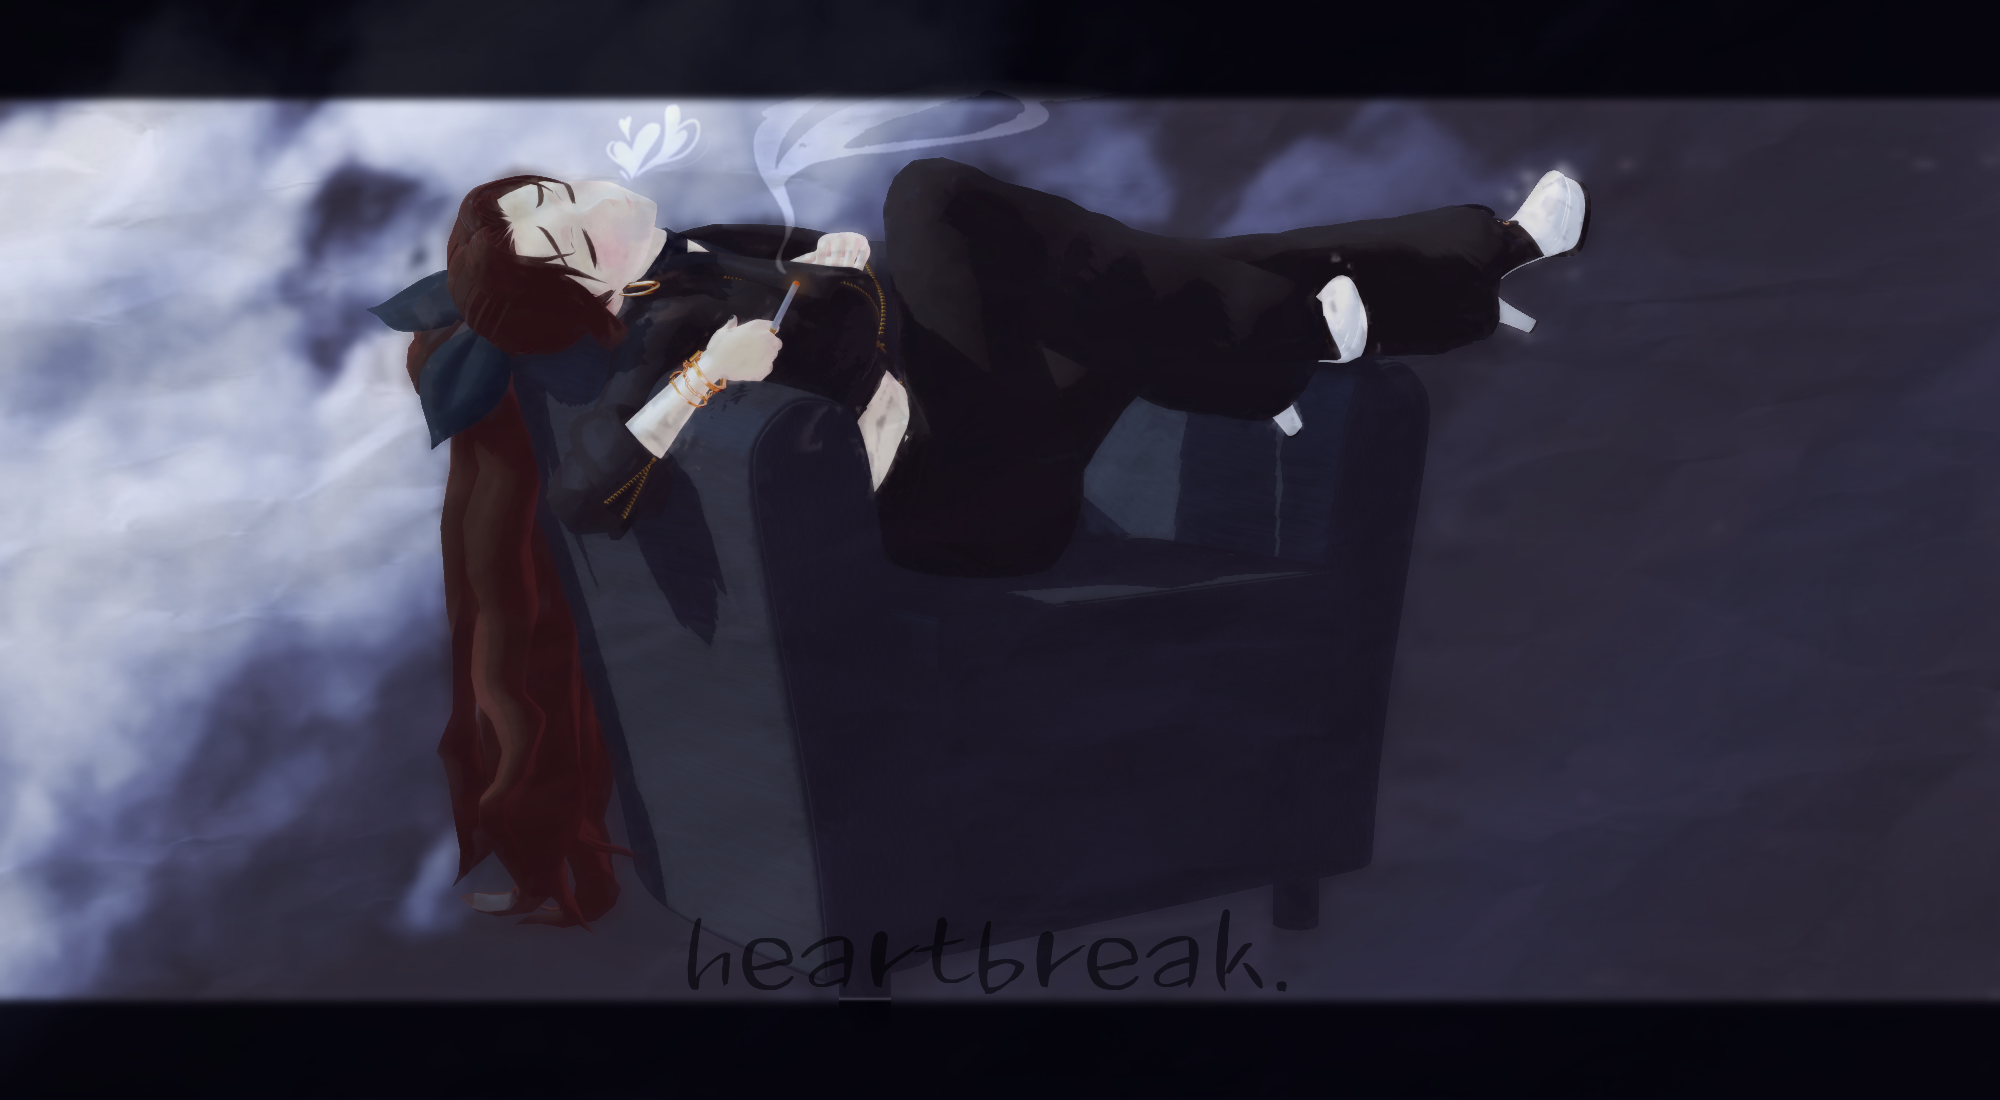 heartbreak. by Kit-Cat-Kisses